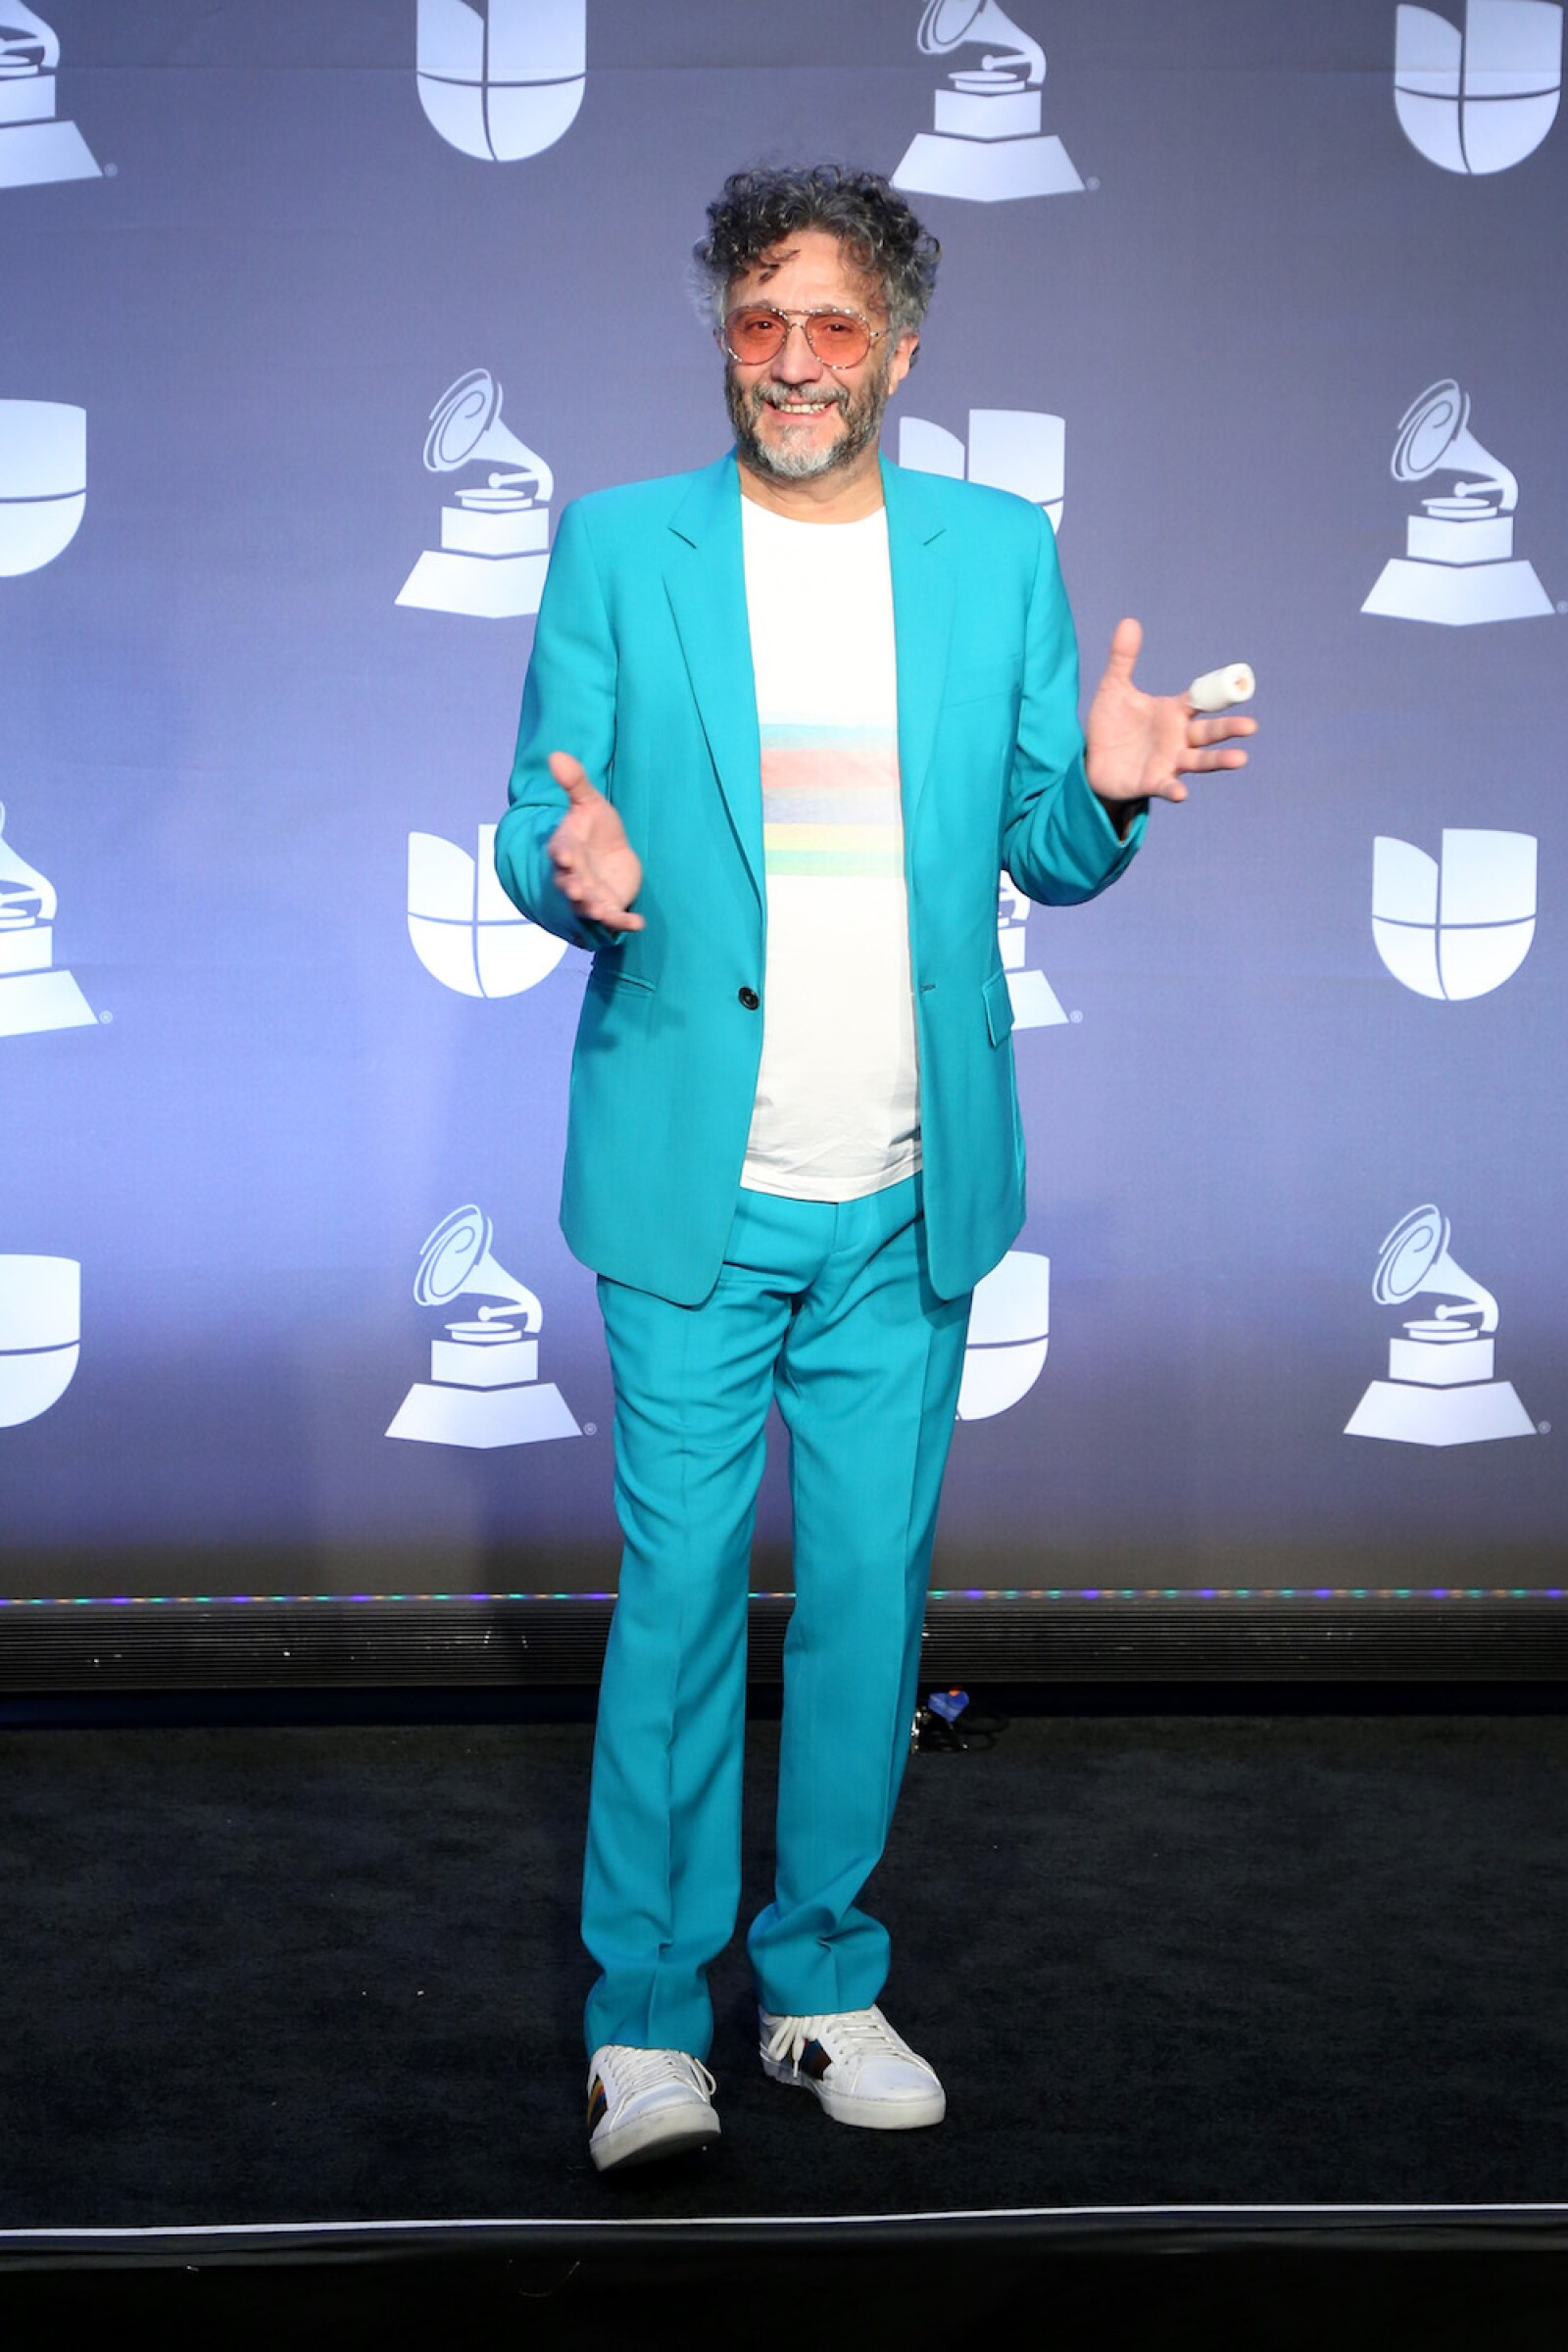 The 20th Annual Latin GRAMMY Awards - Press Room